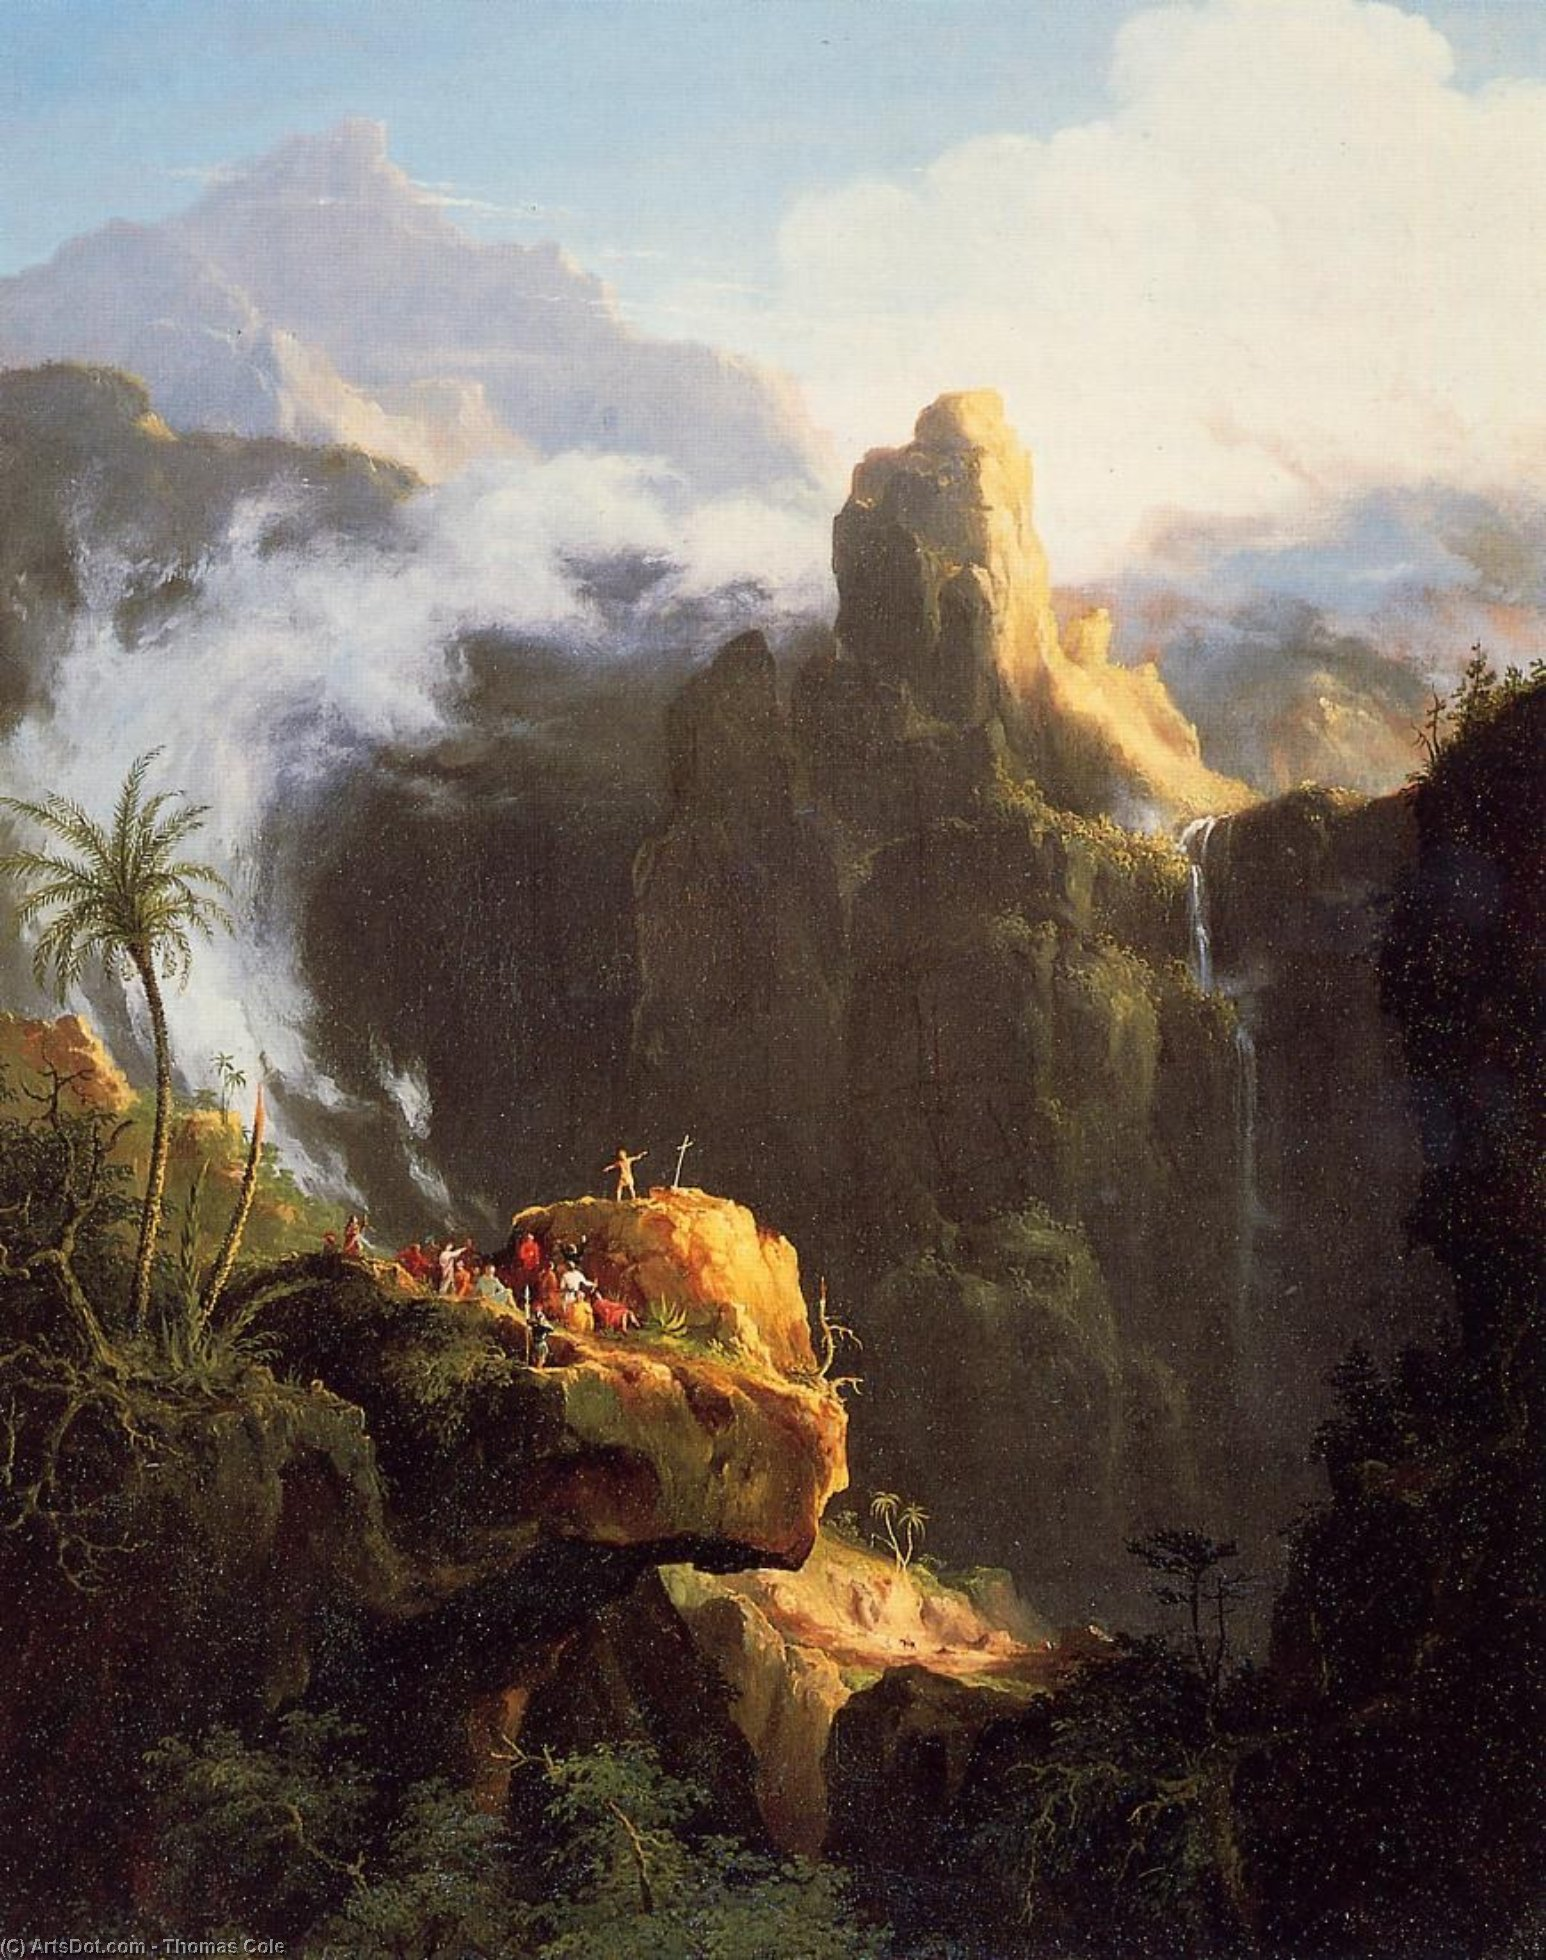 landschaft komposition Heilige  Klo  an  der  wildnis , öl von Thomas Cole (1801-1848, United Kingdom)